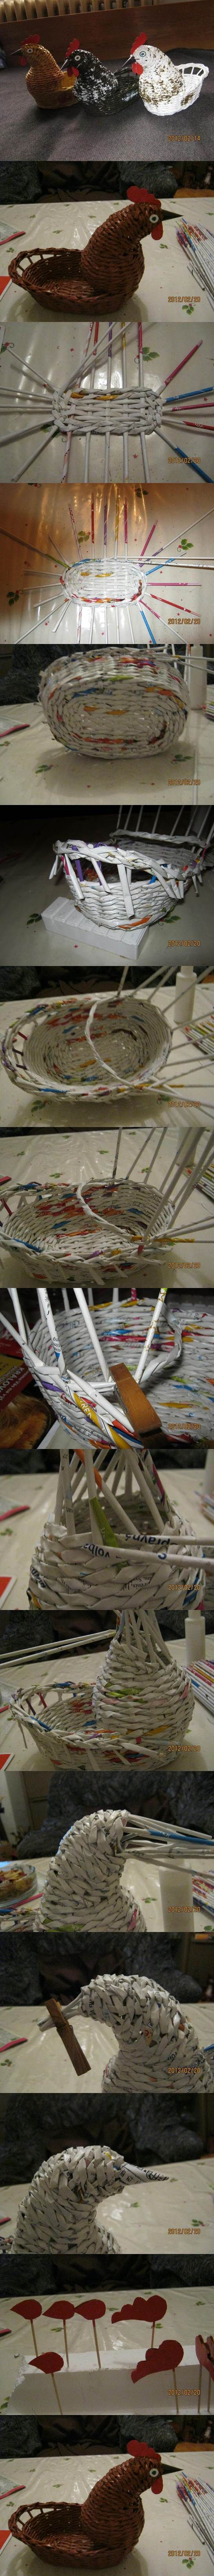 DIY Woven Paper Chicken Easter Basket | iCreativeIdeas.com Like Us on Facebook == https://www.facebook.com/icreativeideas